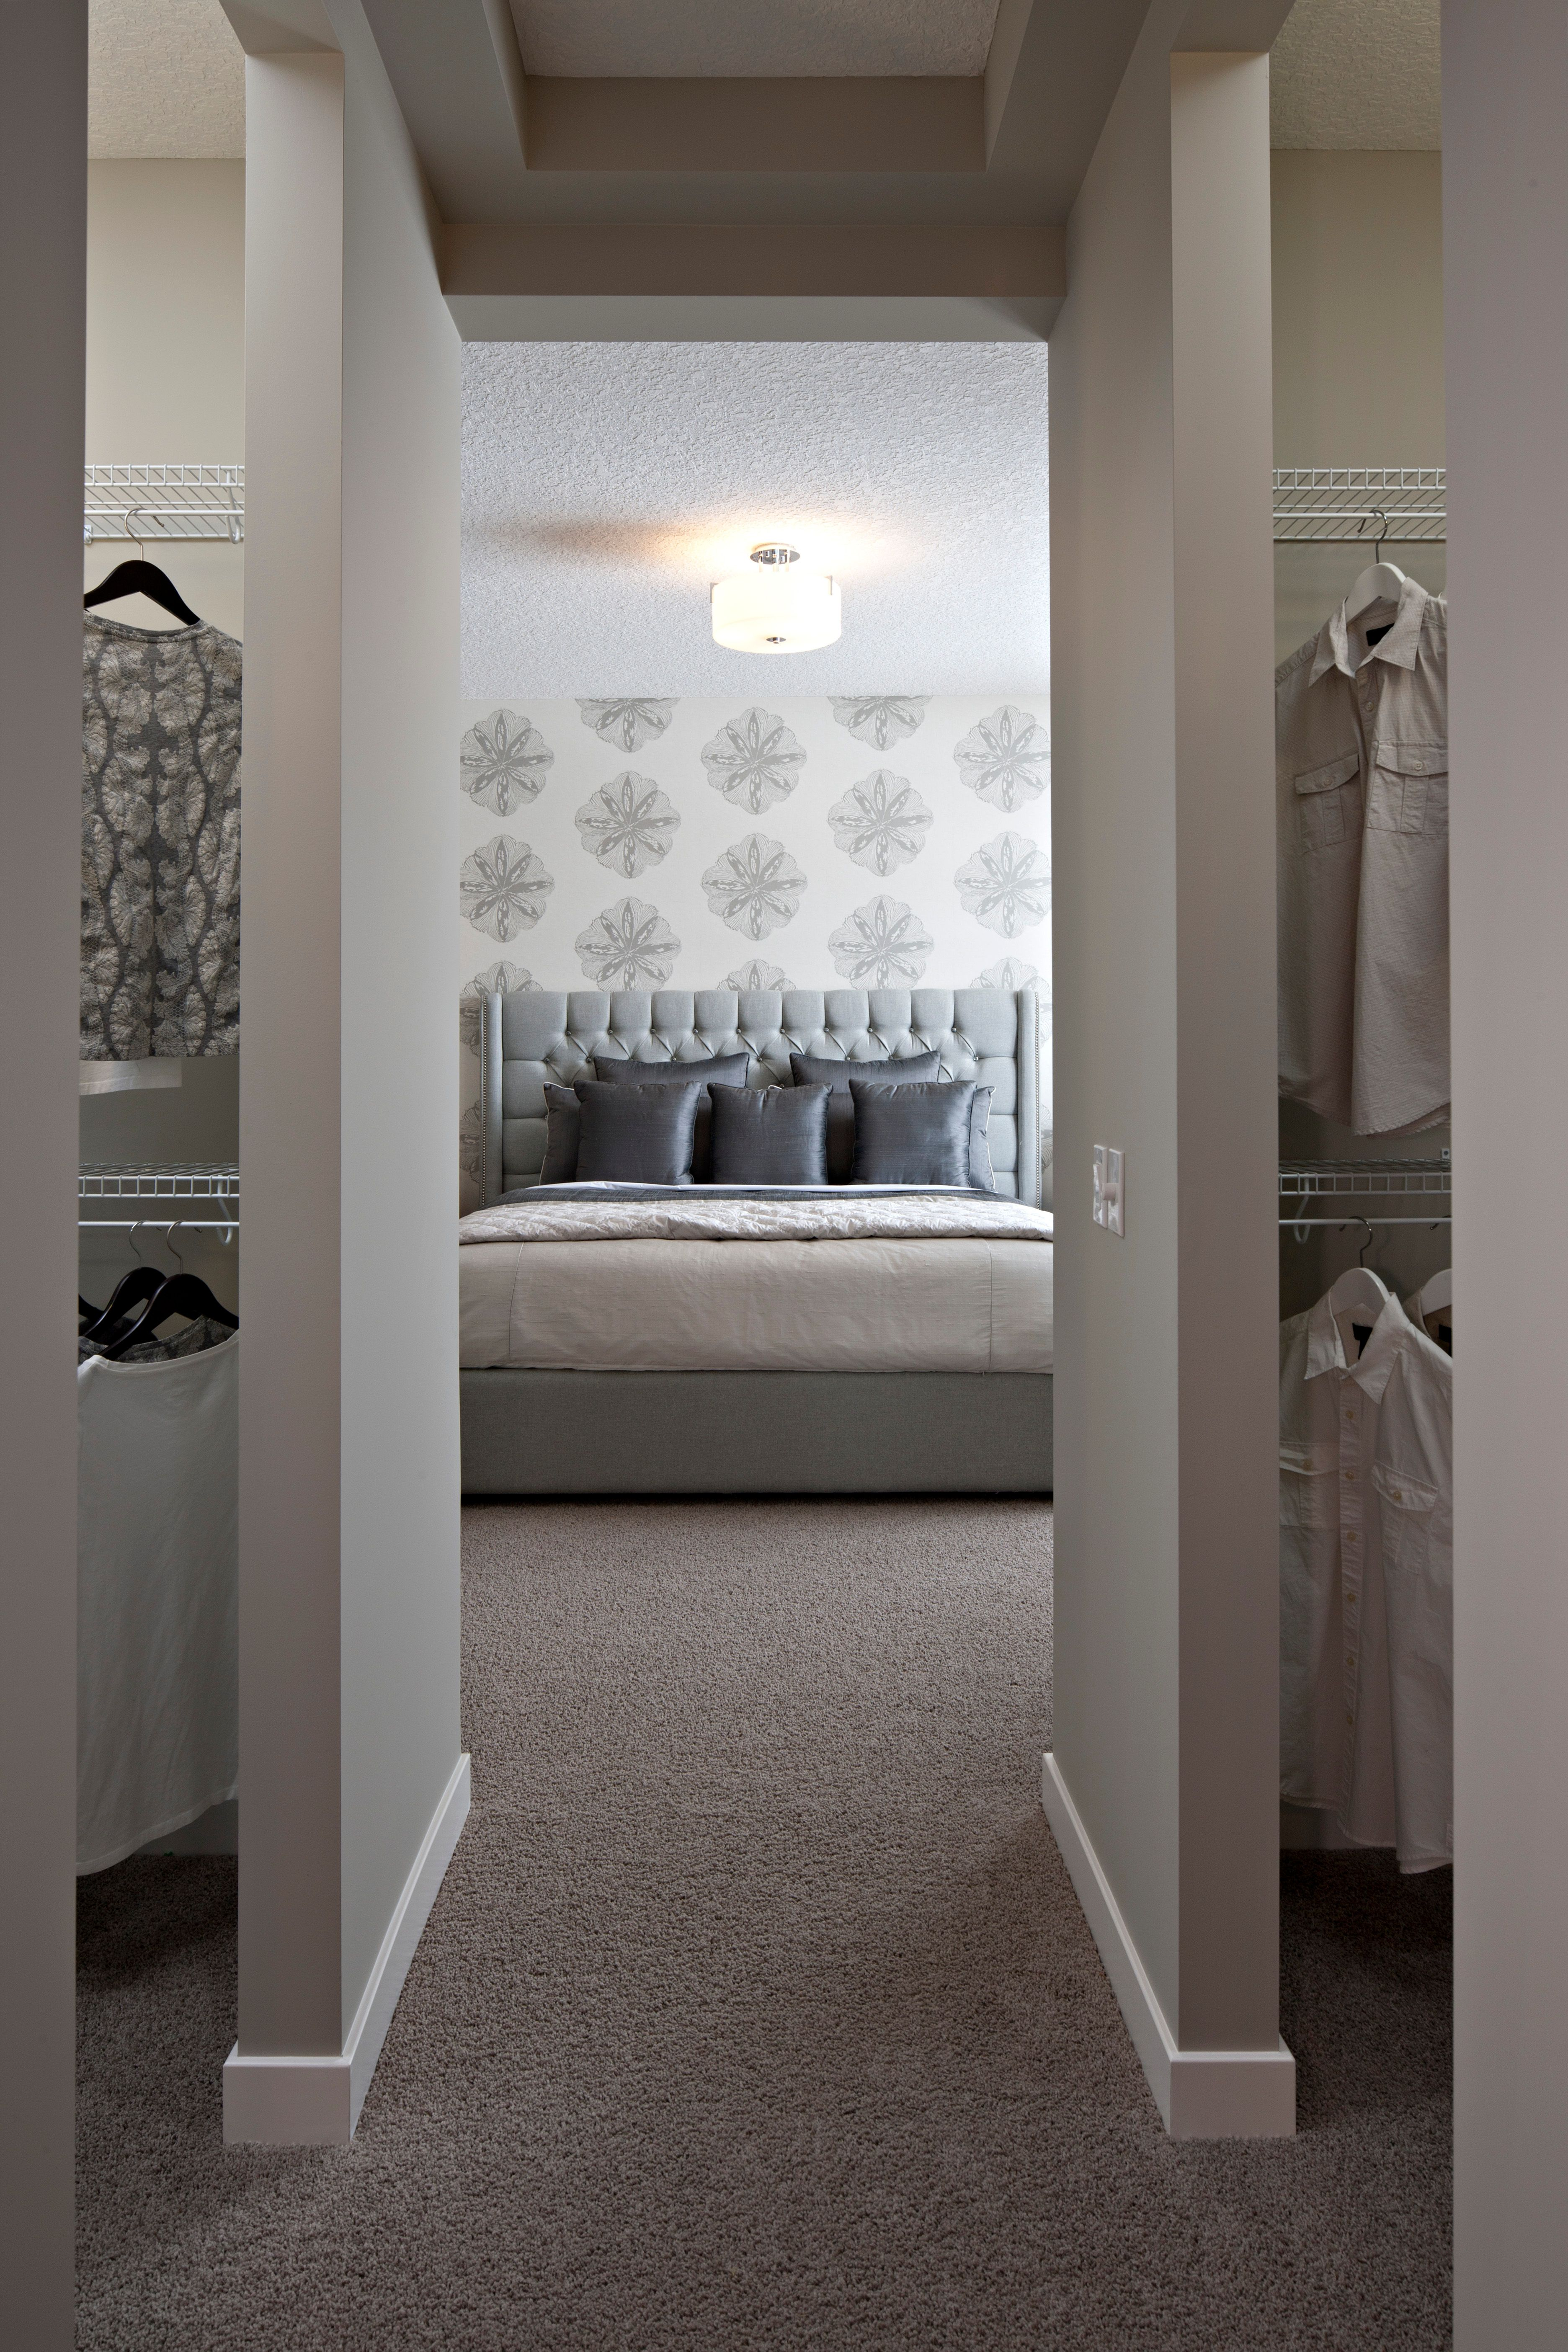 His And Hers Walk In Closet his and her closet with amazing wallpaper. gray and white colors